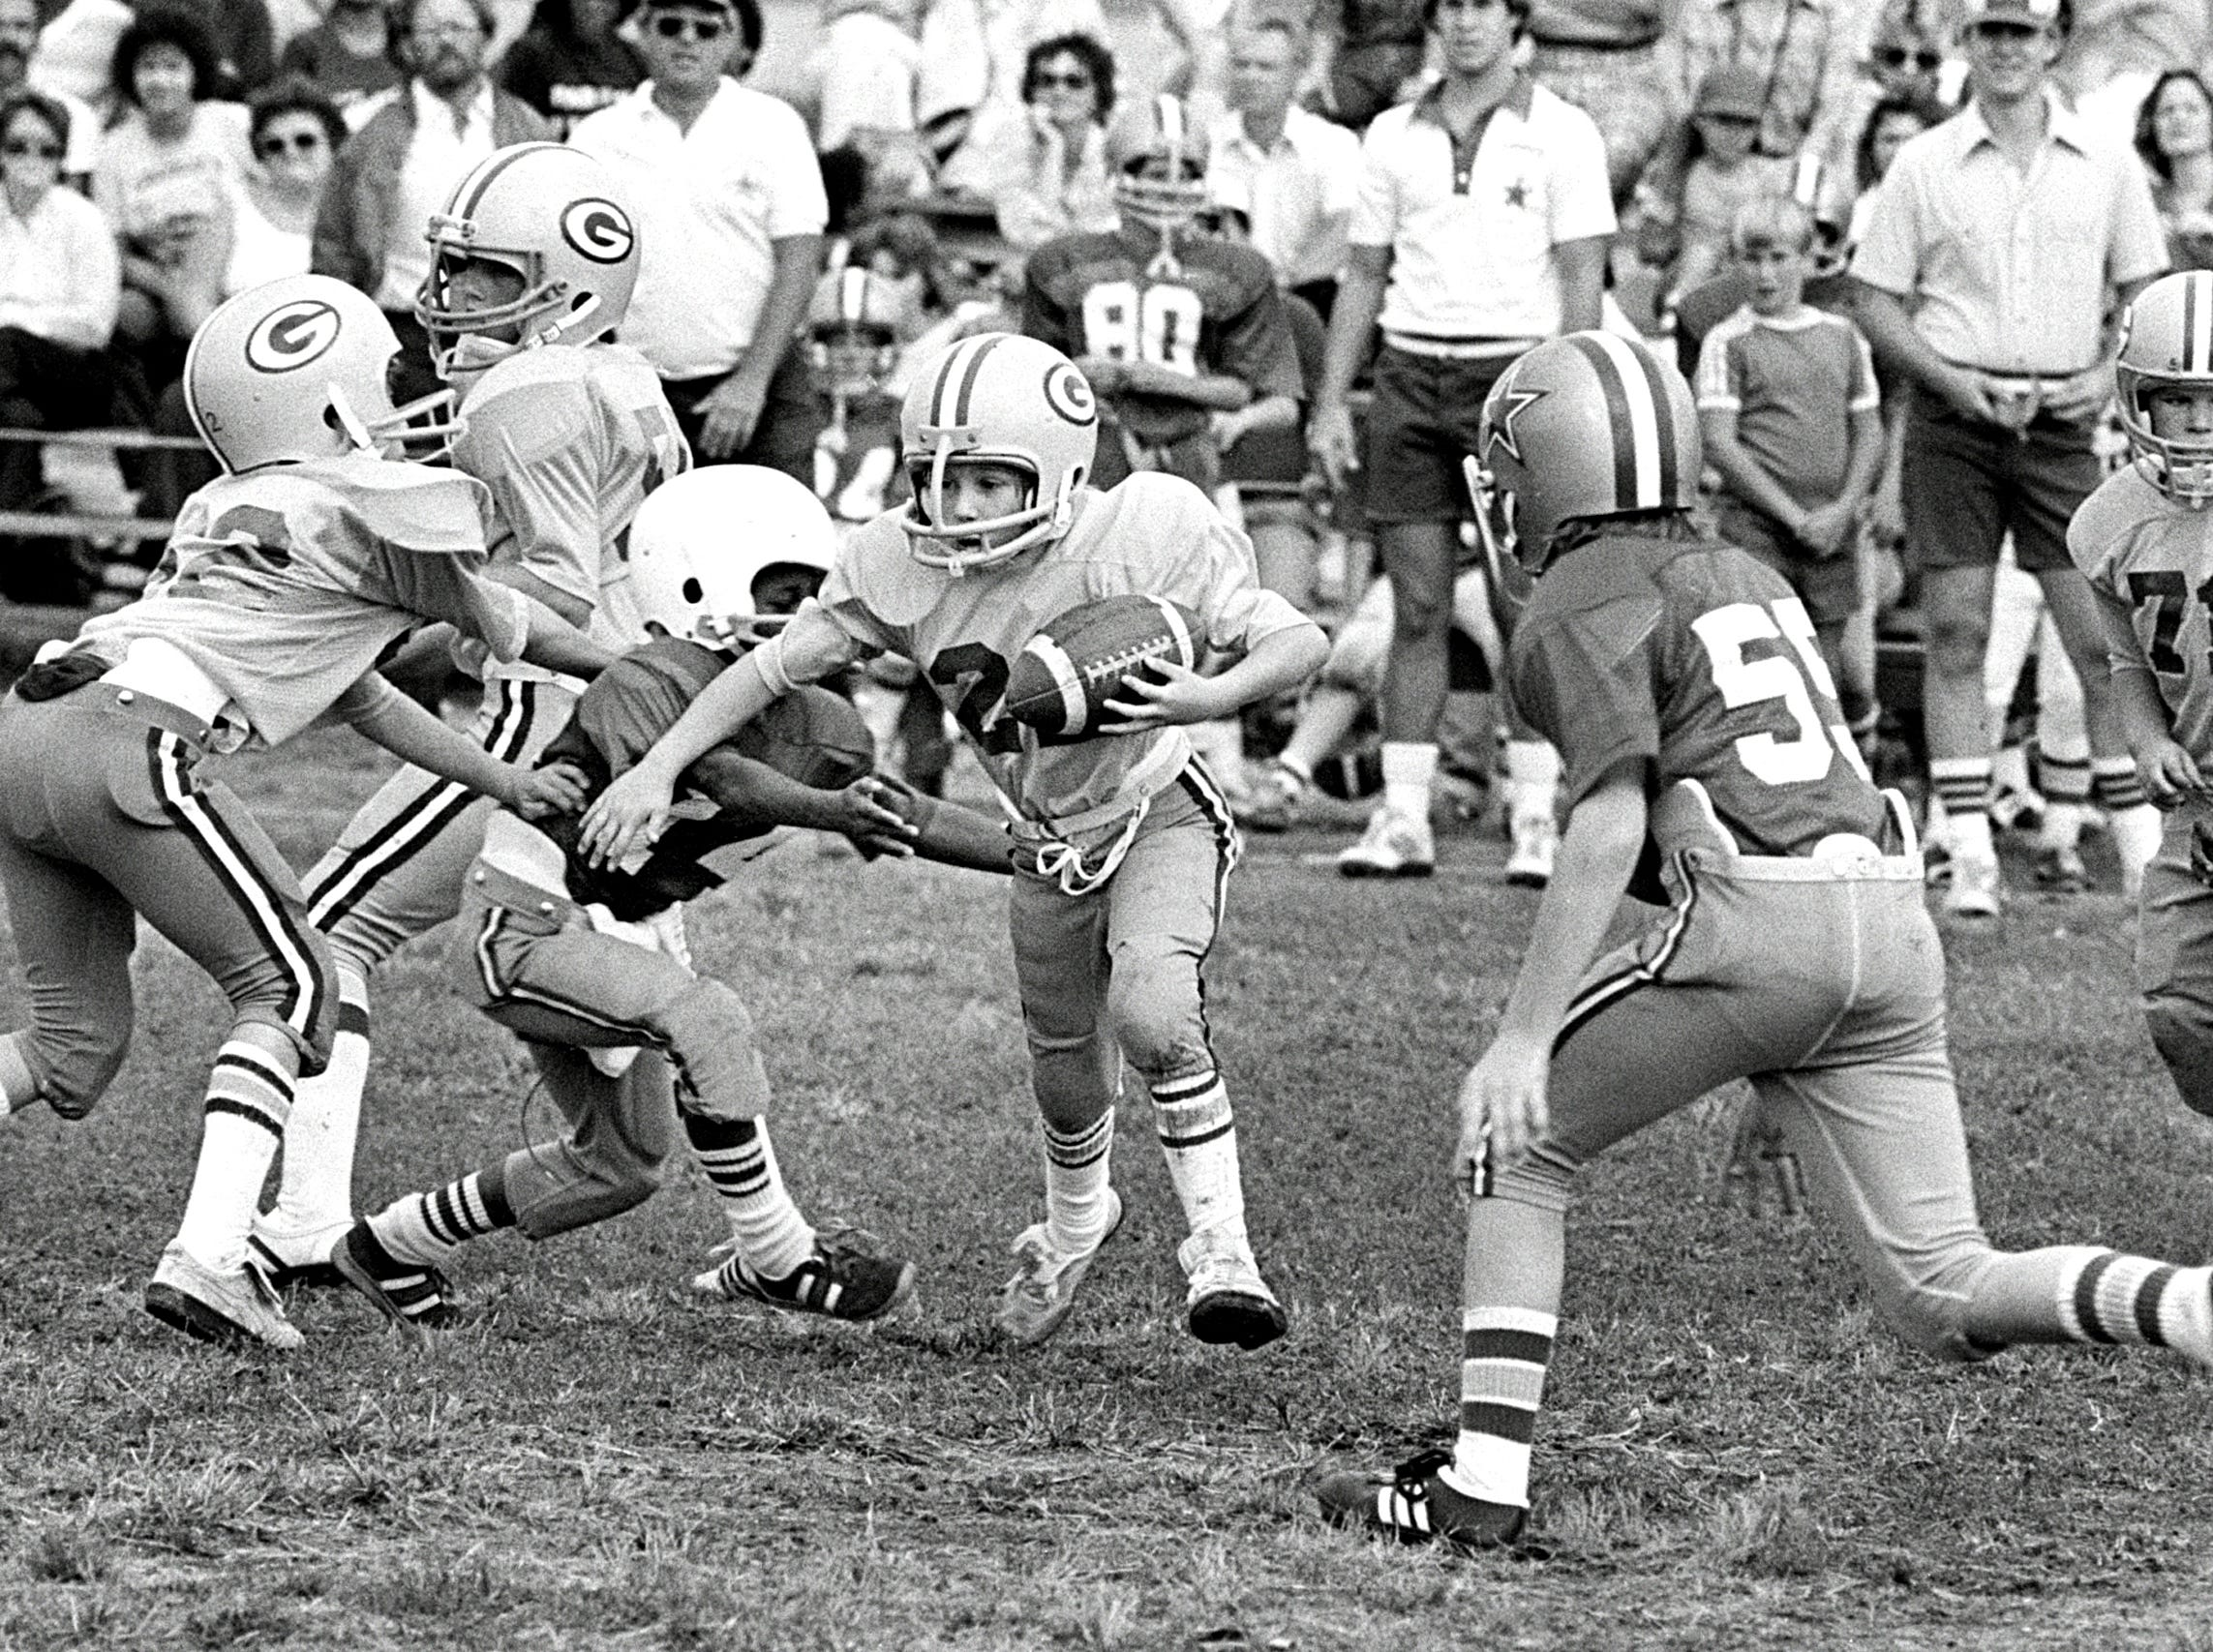 October 10, 1982 - Chris Parrish of the Packers tries to elude Cowboys tacklers on the gridiron at Knight Road Elementary School on October 10, 1982. These Southeast Memphis youngsters are filling a football void on Sundays while the National Football League is on strike. The Packers lost to the Cowboys 14 to 2 in this event, which was part of a doubleheader.